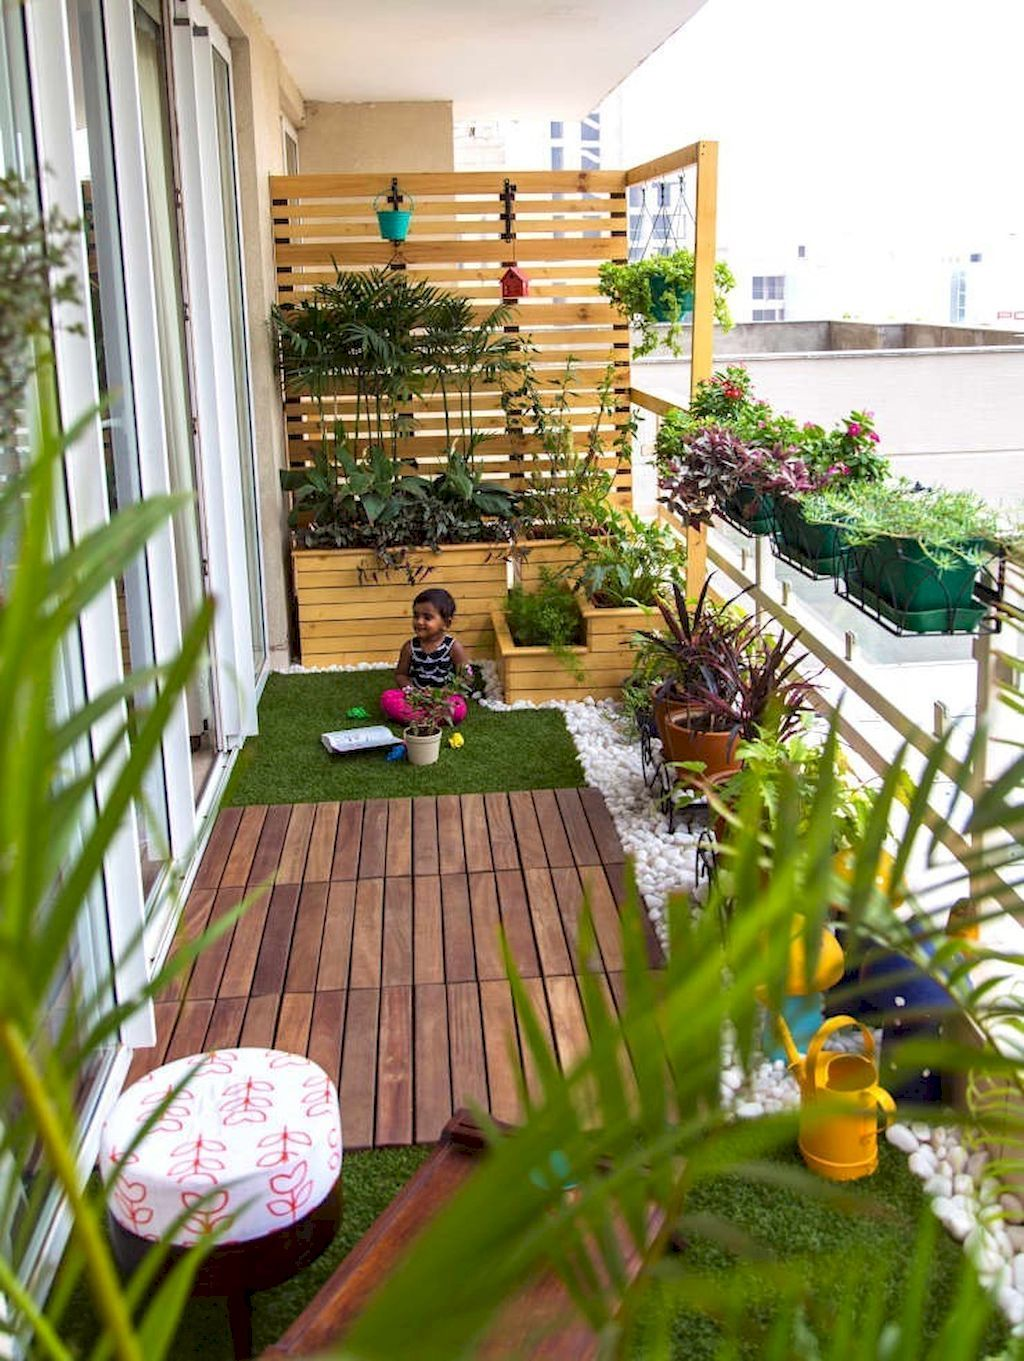 Pin by Lizz Wilmarth on Architecture | Balcony, Apartment balcony decorating,  Balcony Garden - Pin By Lizz Wilmarth On Architecture Balcony, Apartment Balcony